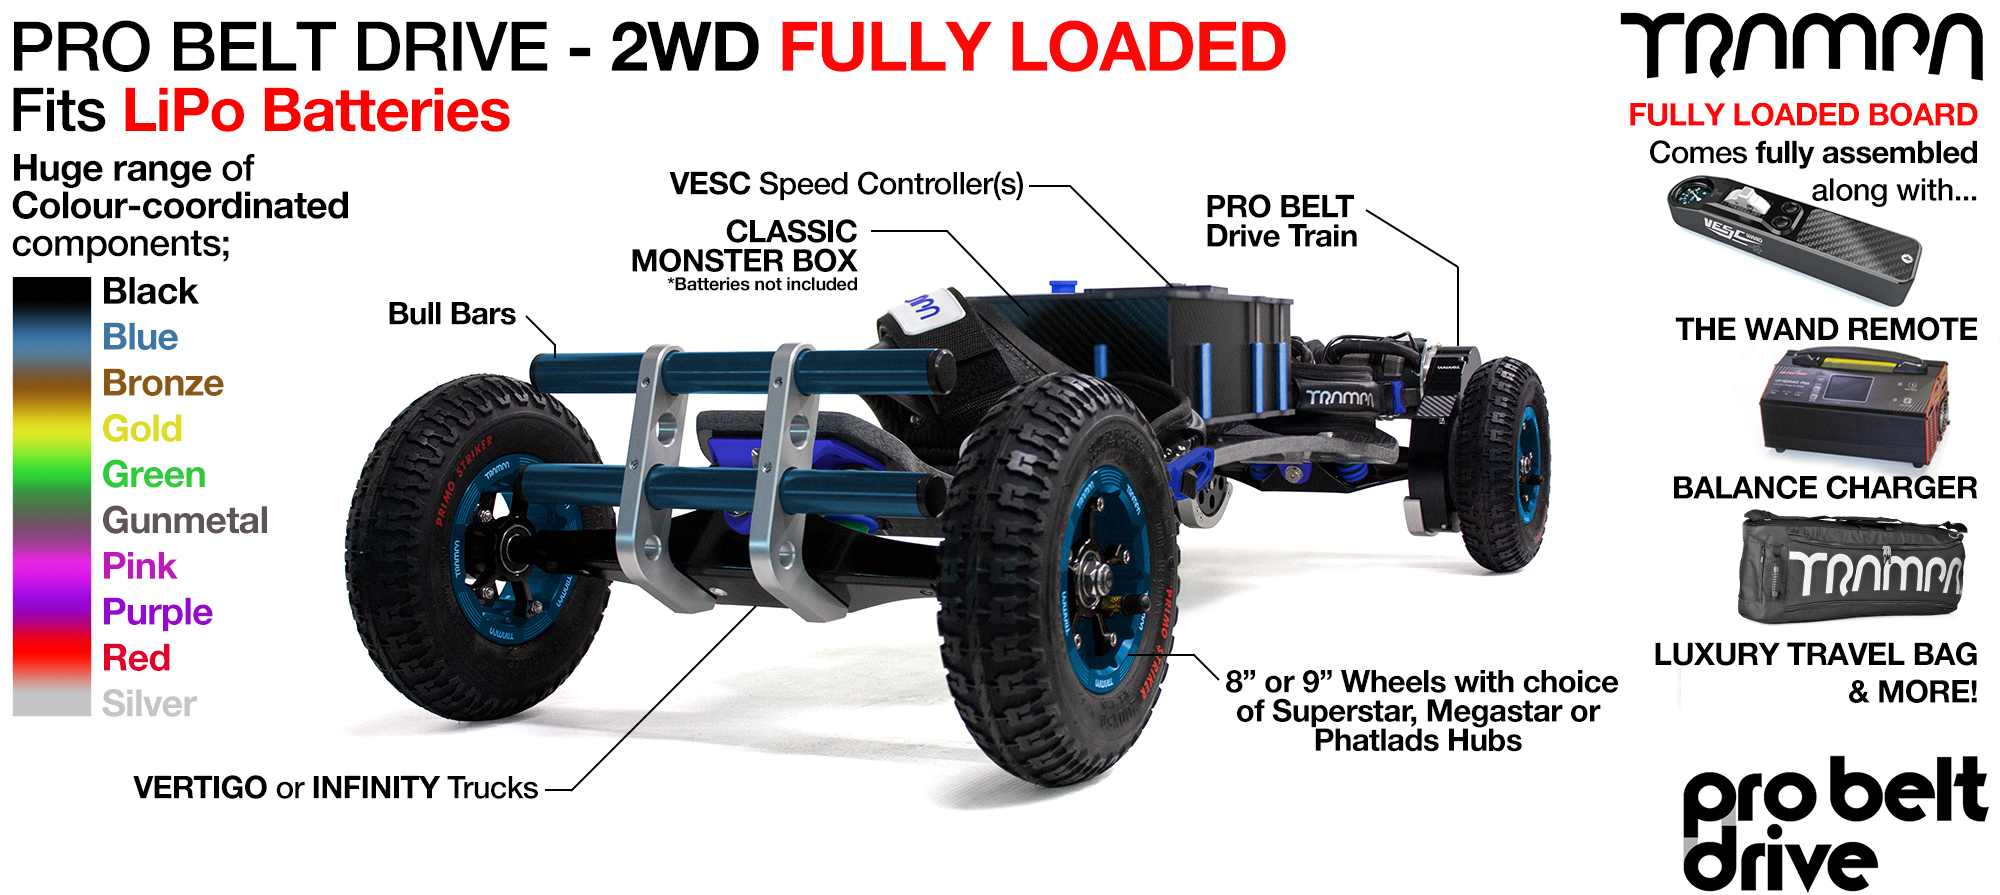 TRAMPA PRO Belt Drive Electric mountainboard FULLY LOADED for Li-Po Cells with The WAND, TWIN 12s ULTRA POWER Charger & Bull Bars, shipped Assembled In a Luxury Bag as standard!!